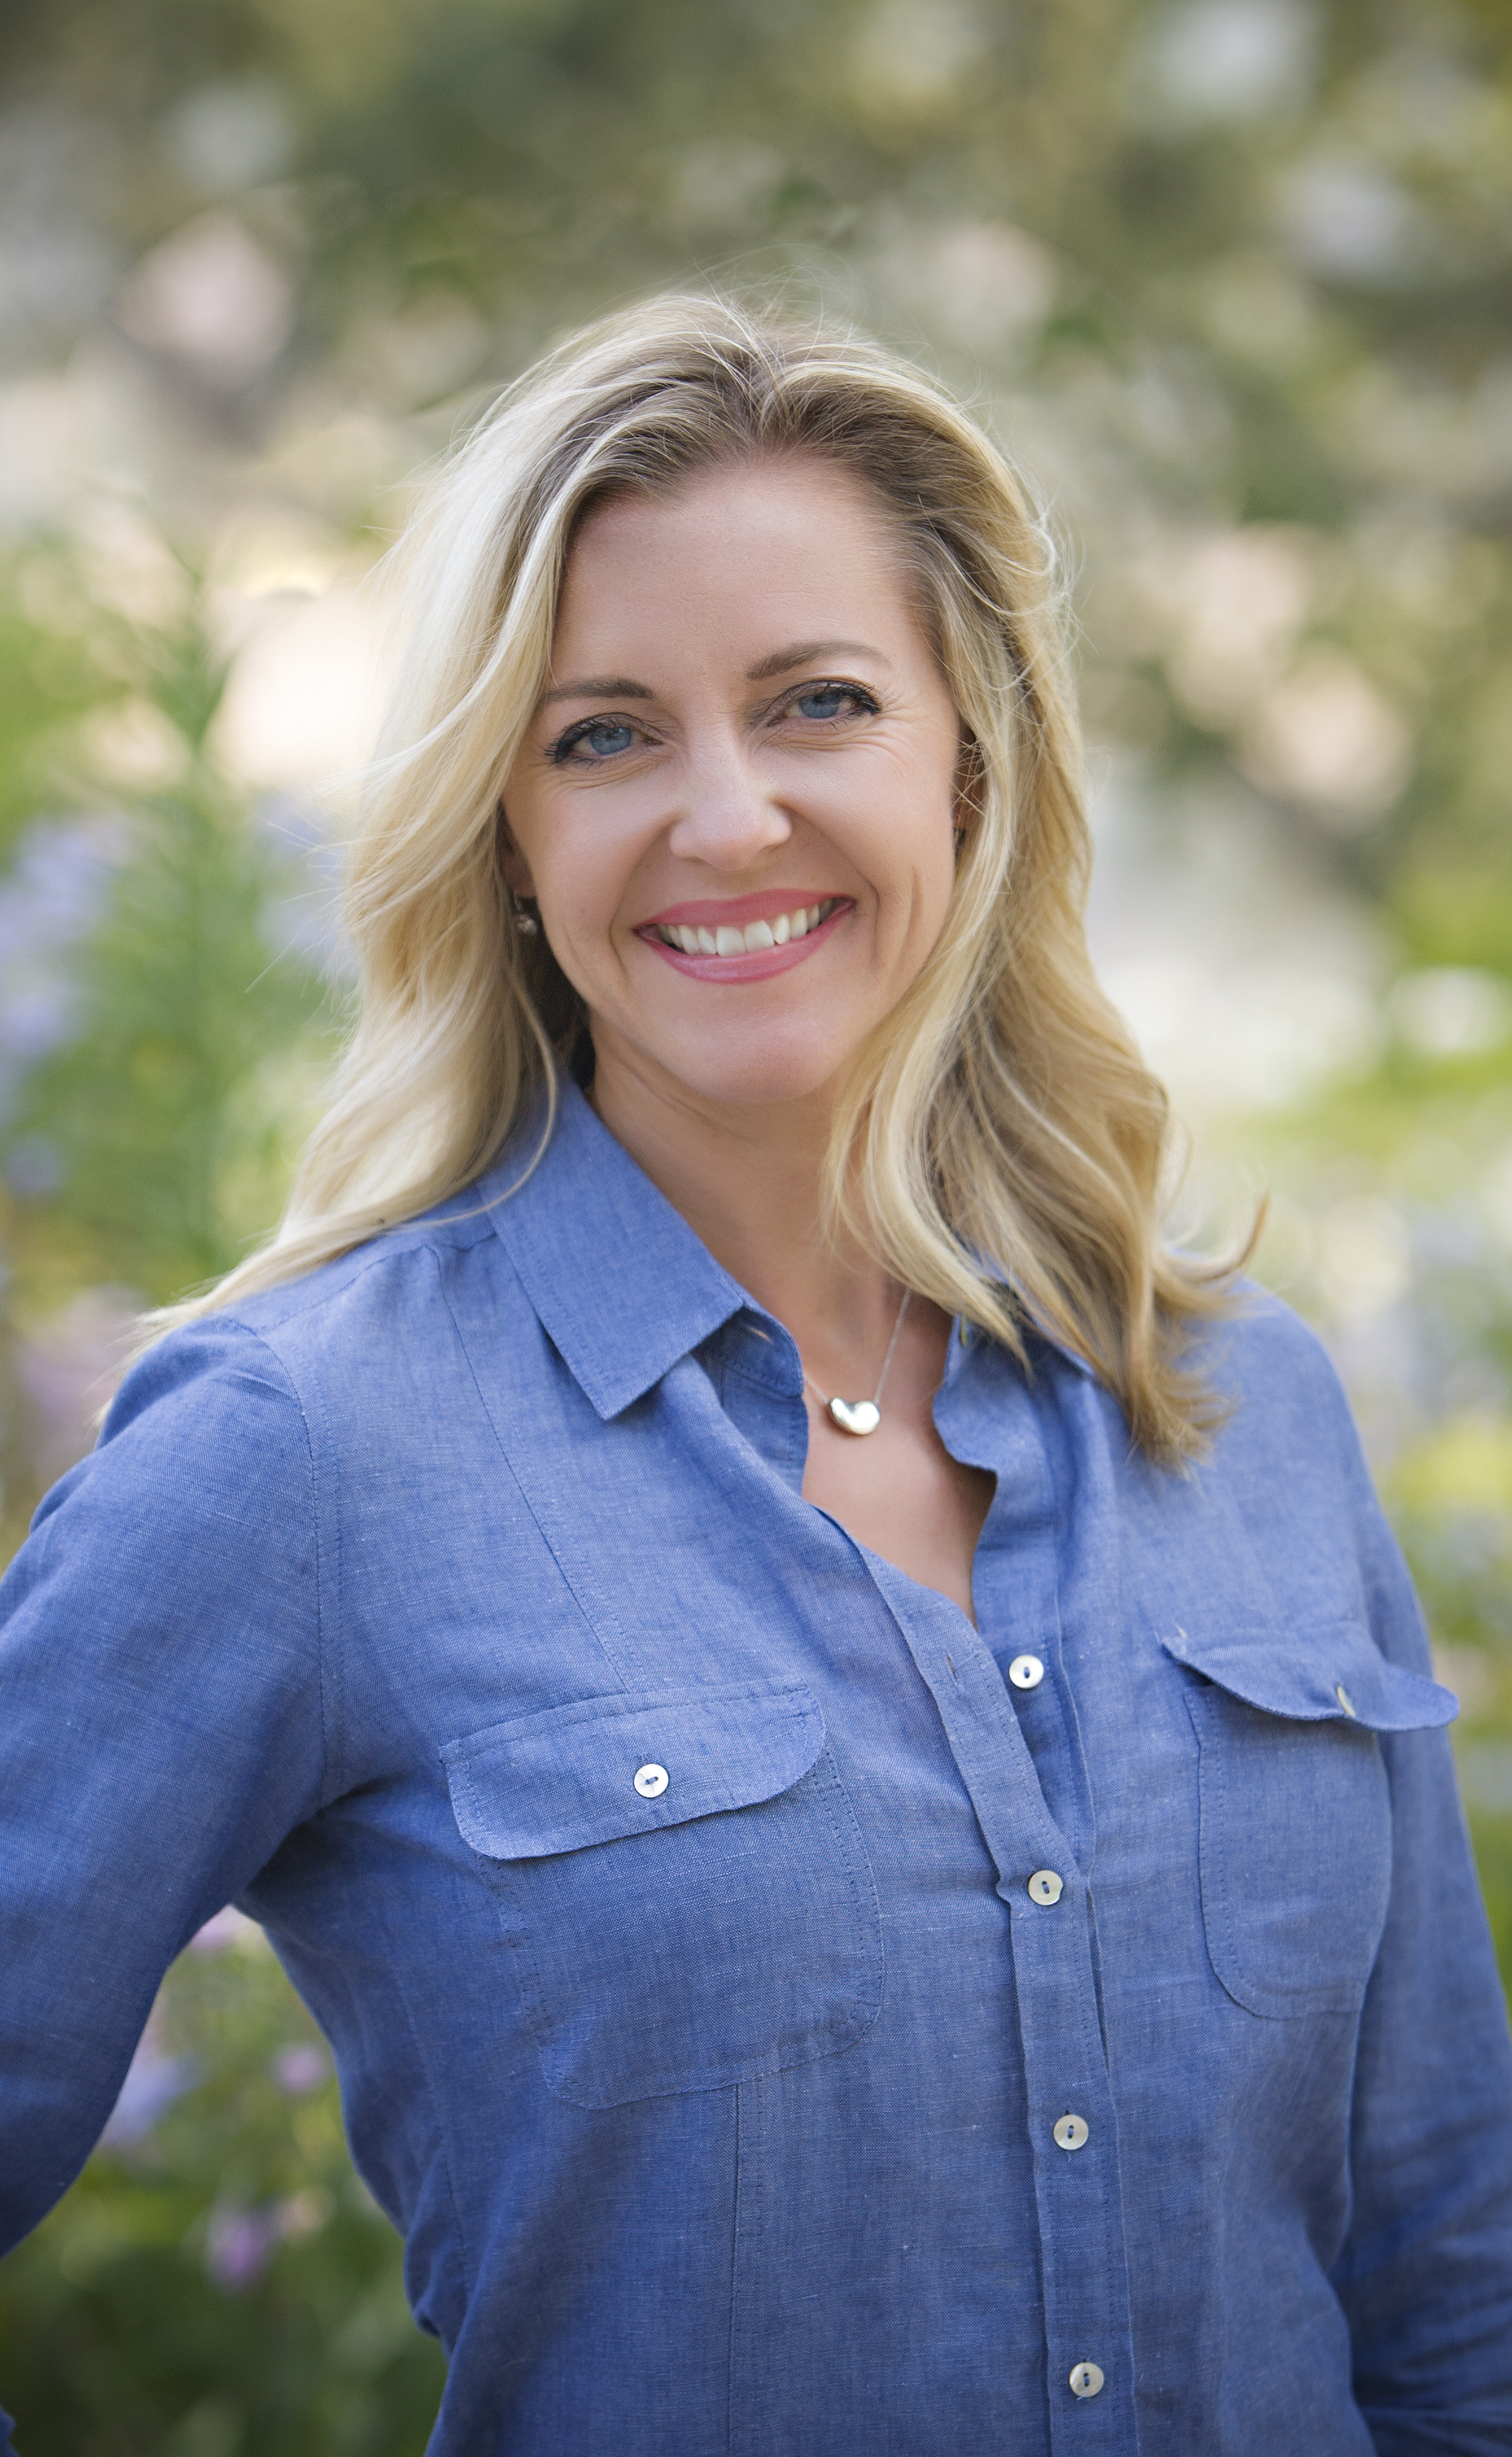 Lisa Gildred, BSN, RN, CWCA (Santa Barbara Legal Nurse Consulting, Wound Care Expert)